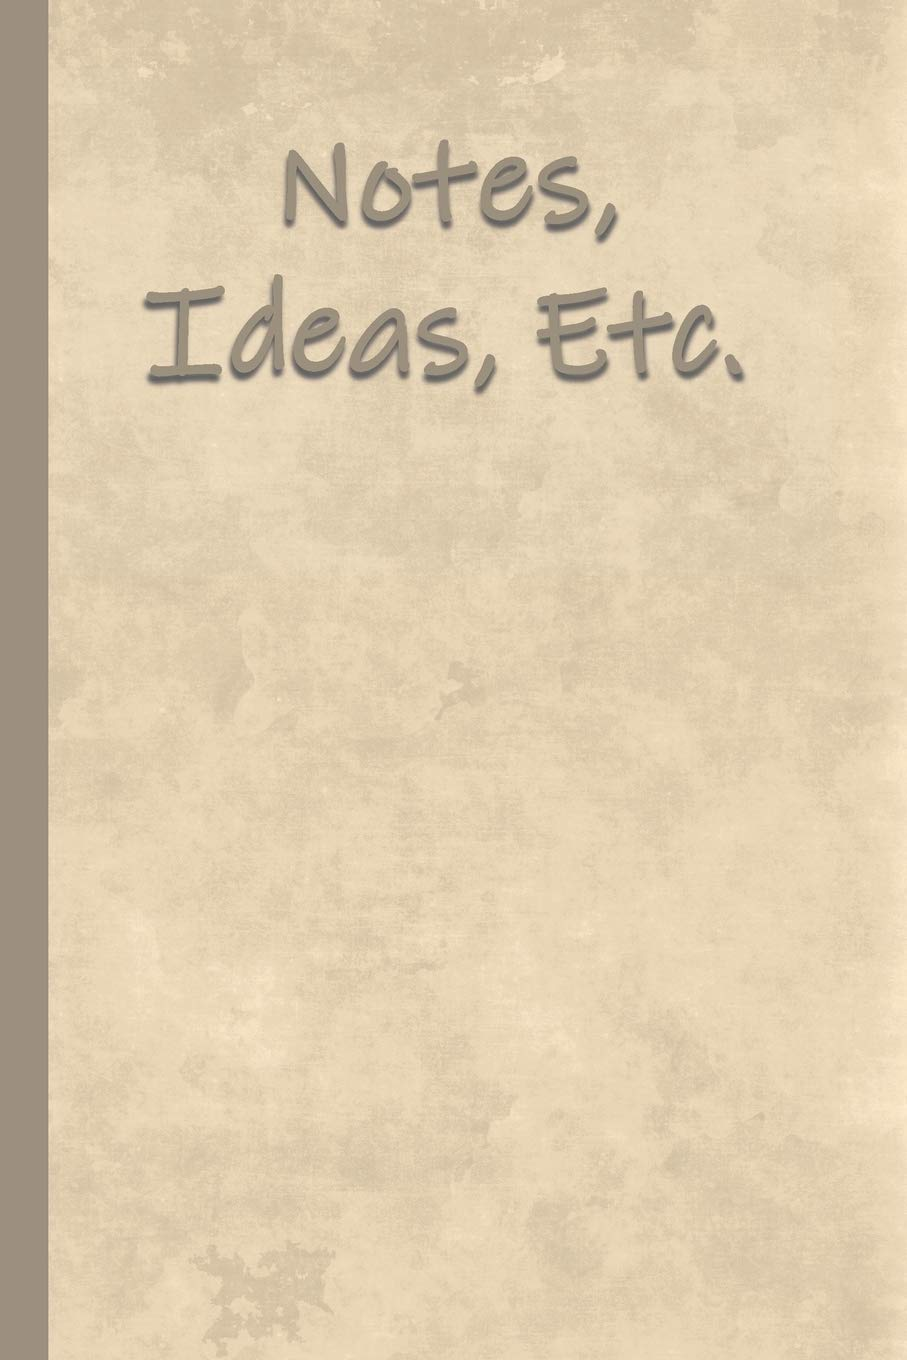 Notes, Ideas, Etc. A Companion Notebook for The ADD ADHD